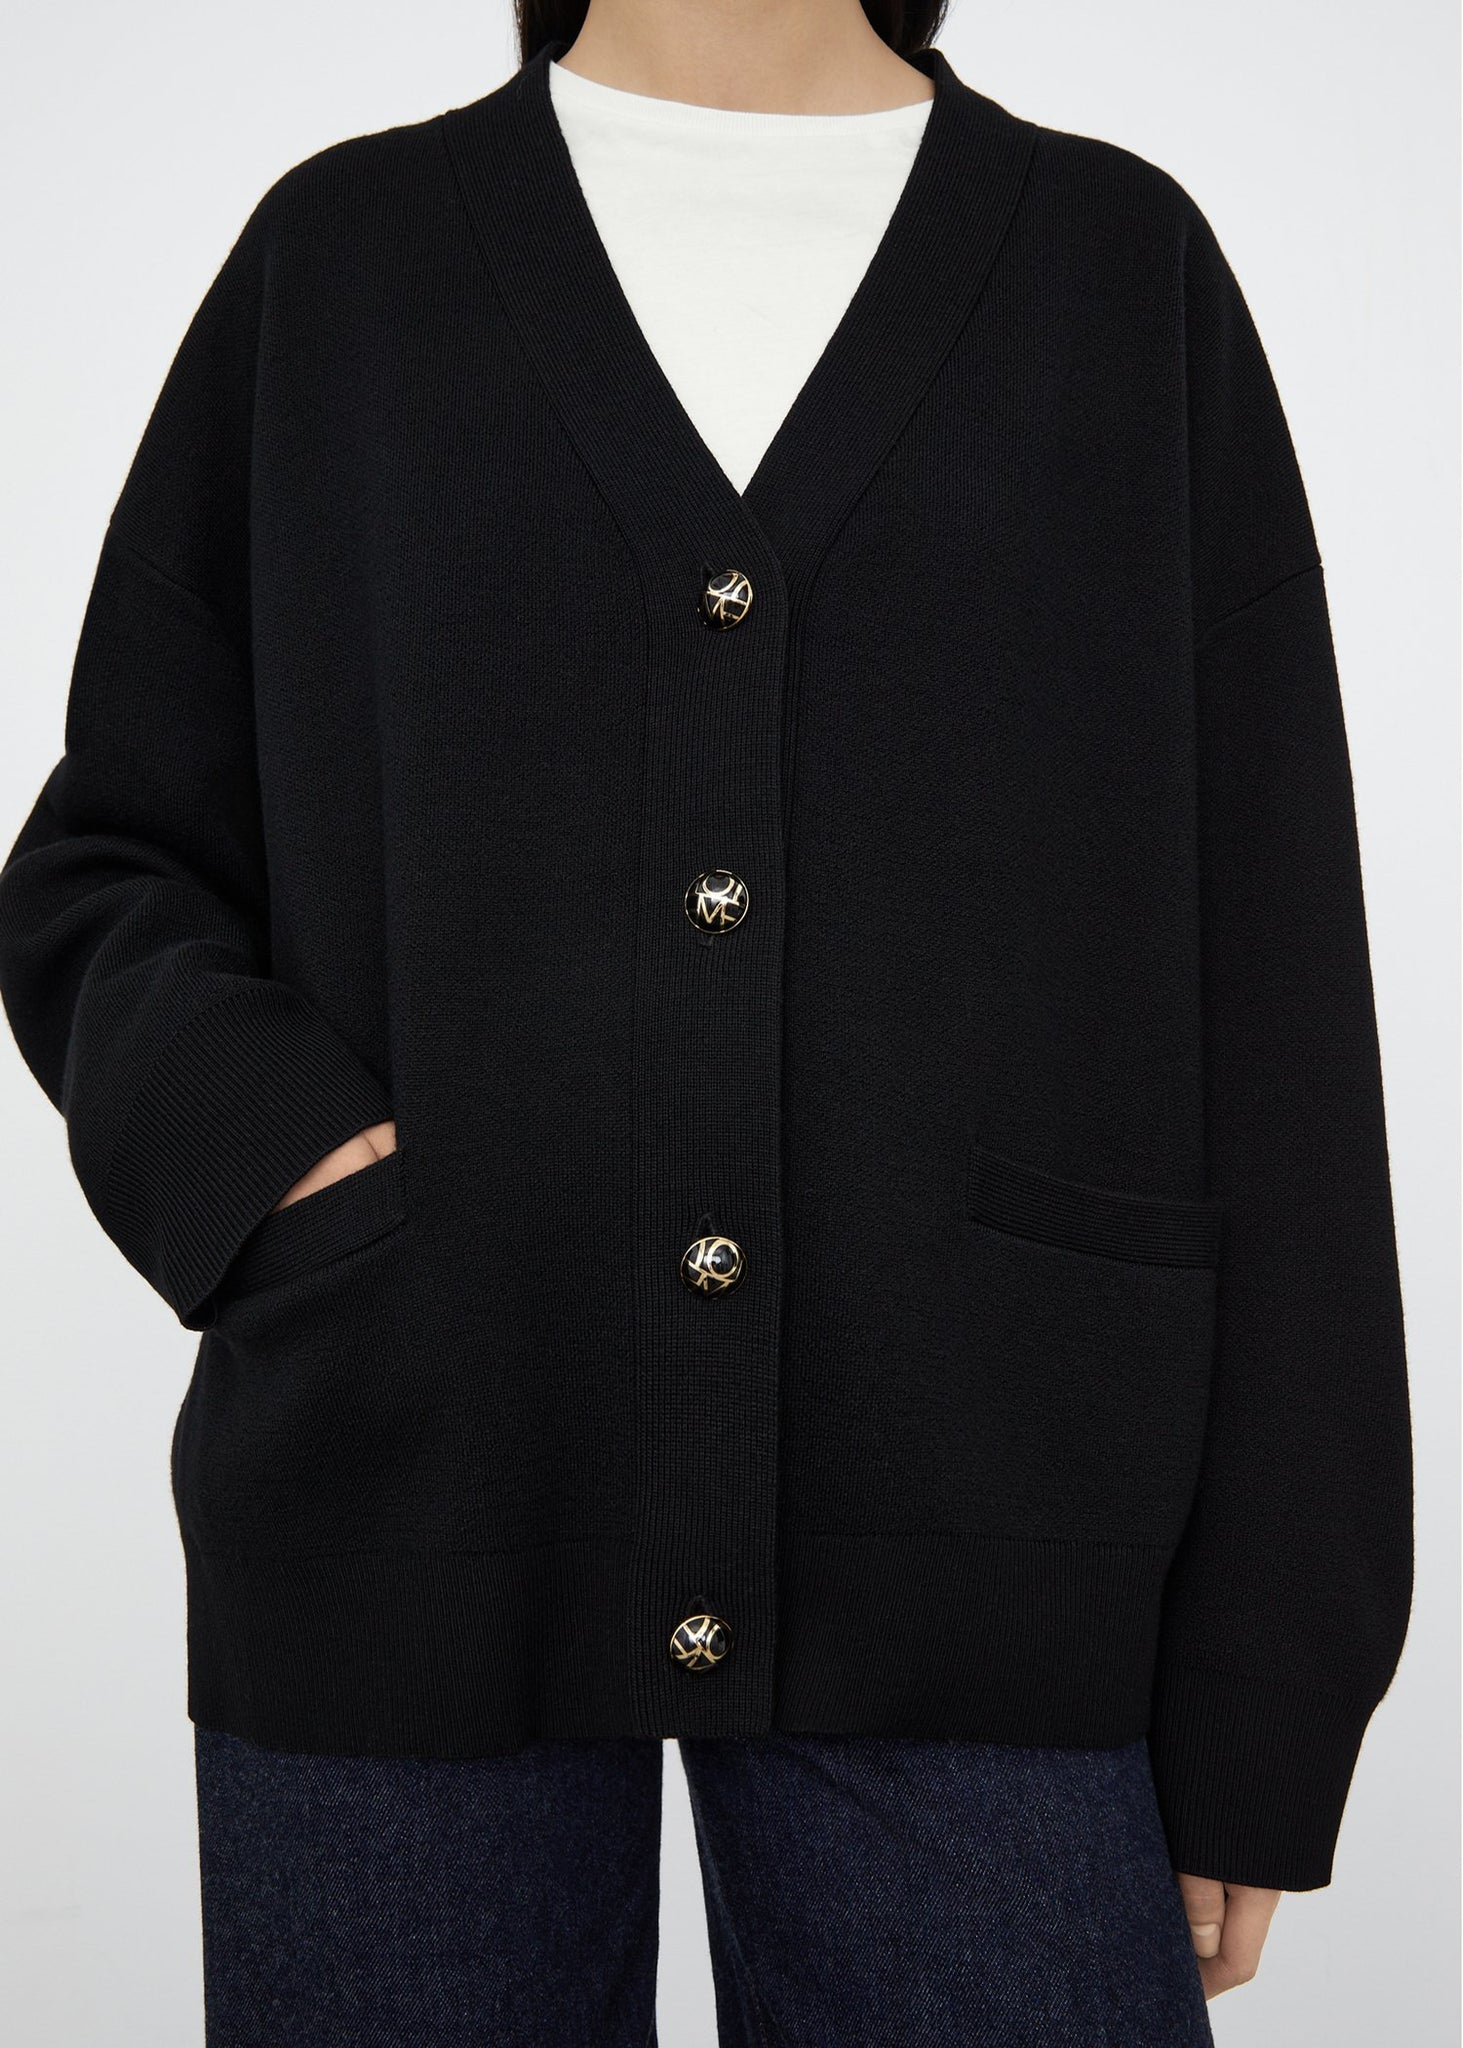 Monogram button cardigan black